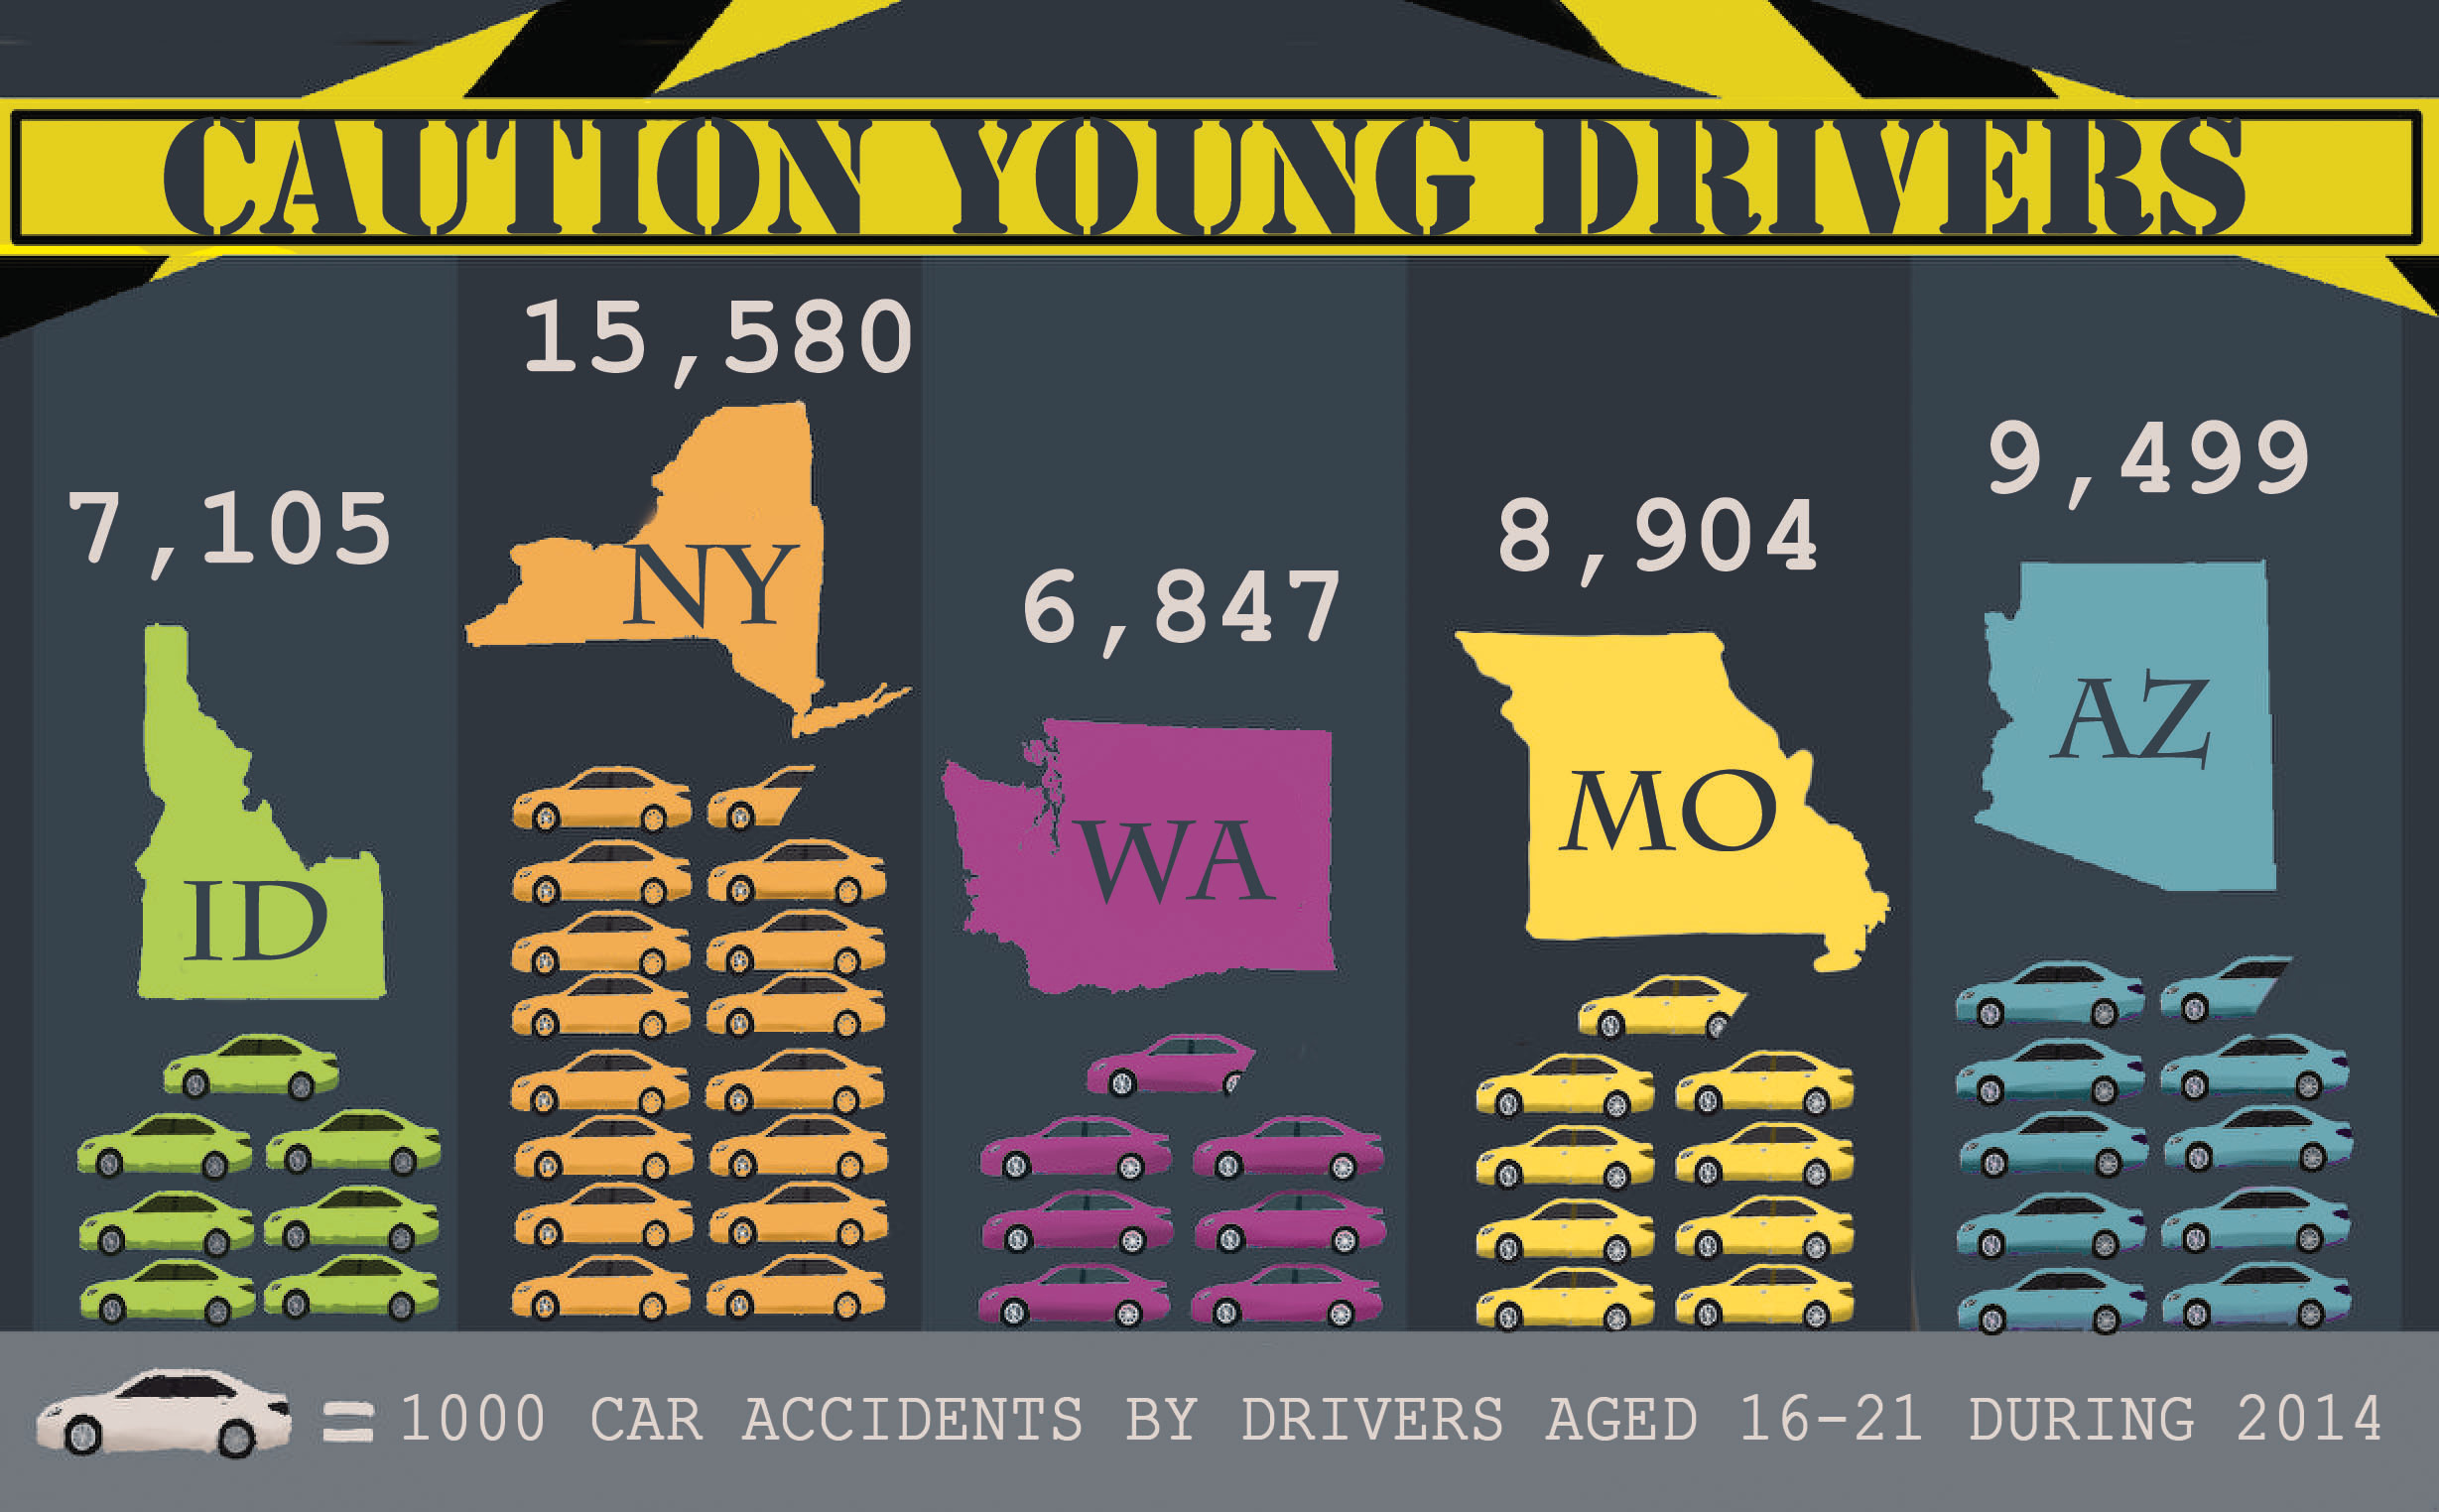 Caution, Young Drivers